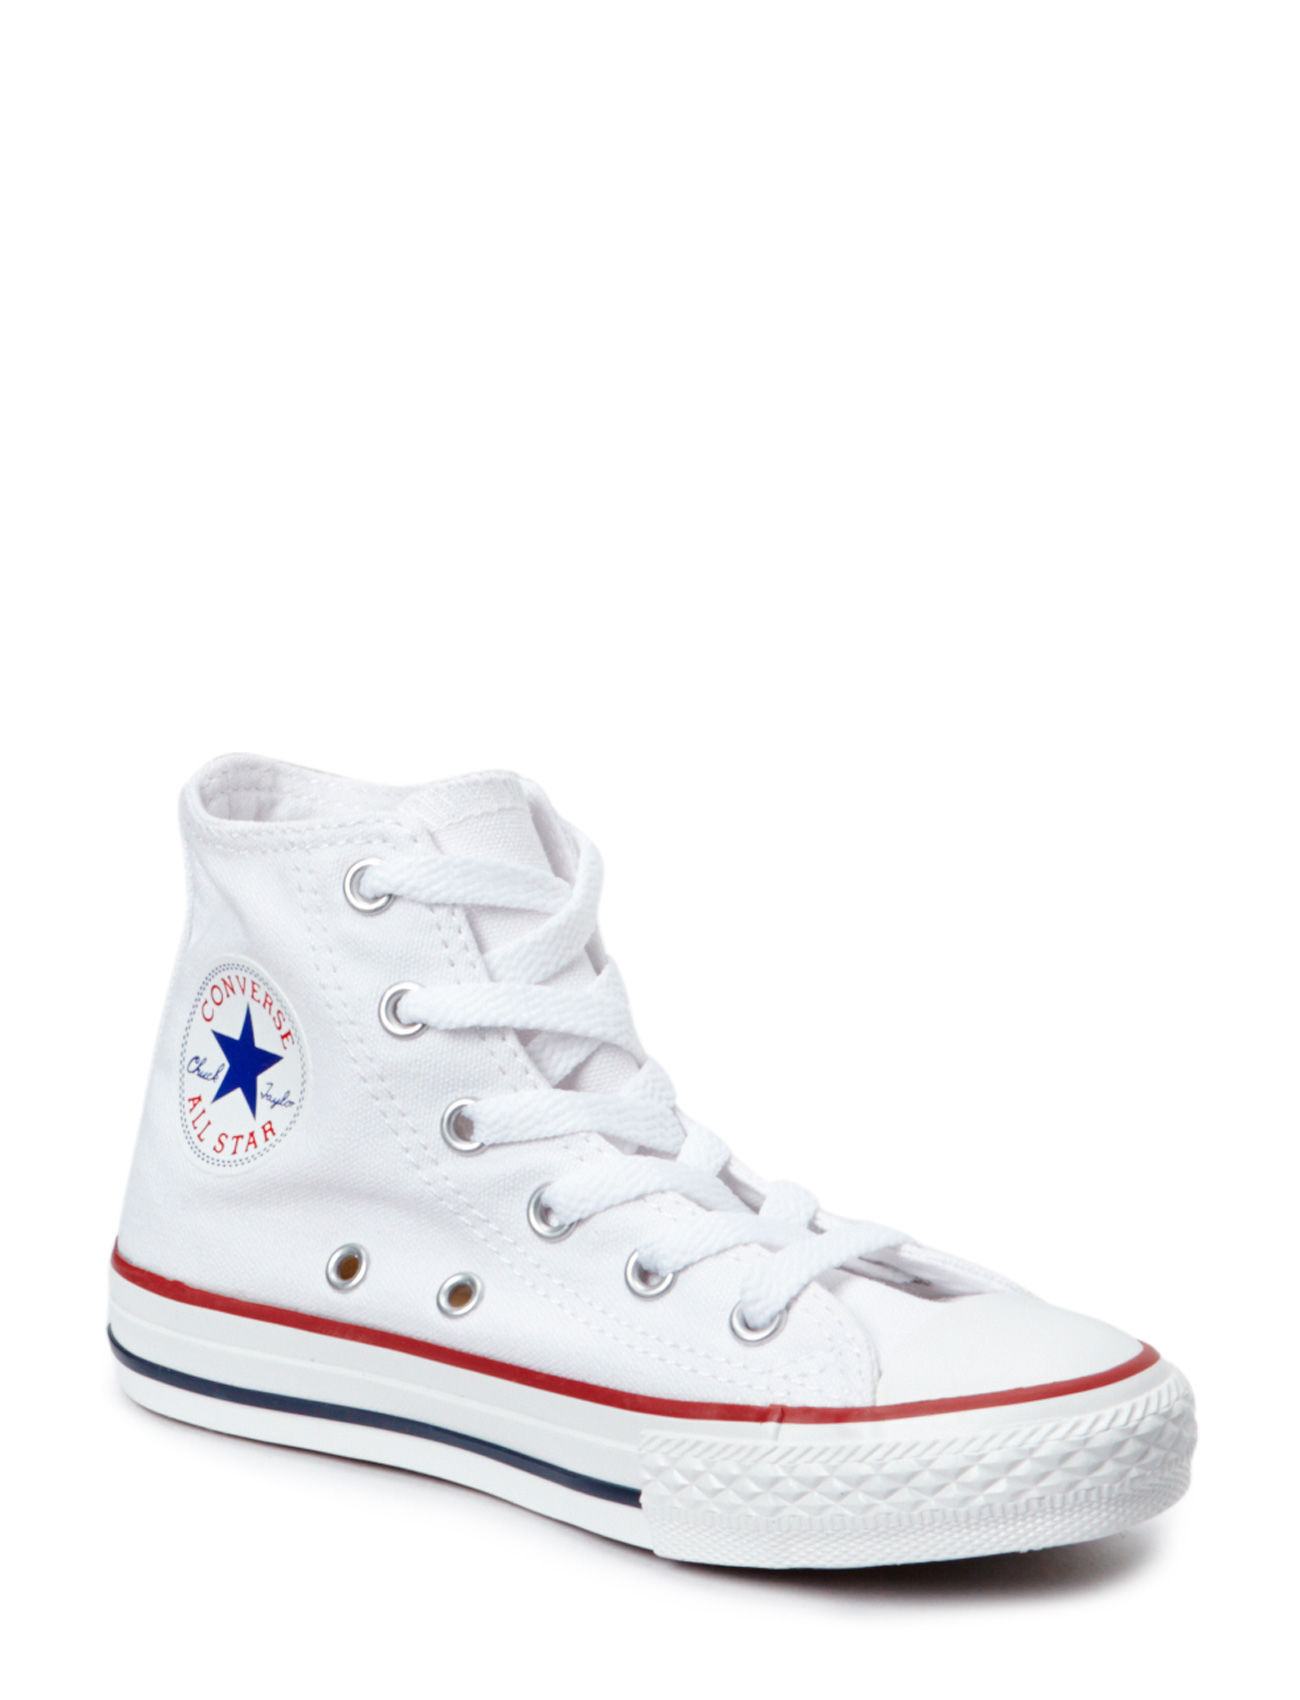 All Star Kids Hi Converse Sko & Sneakers til Børn i